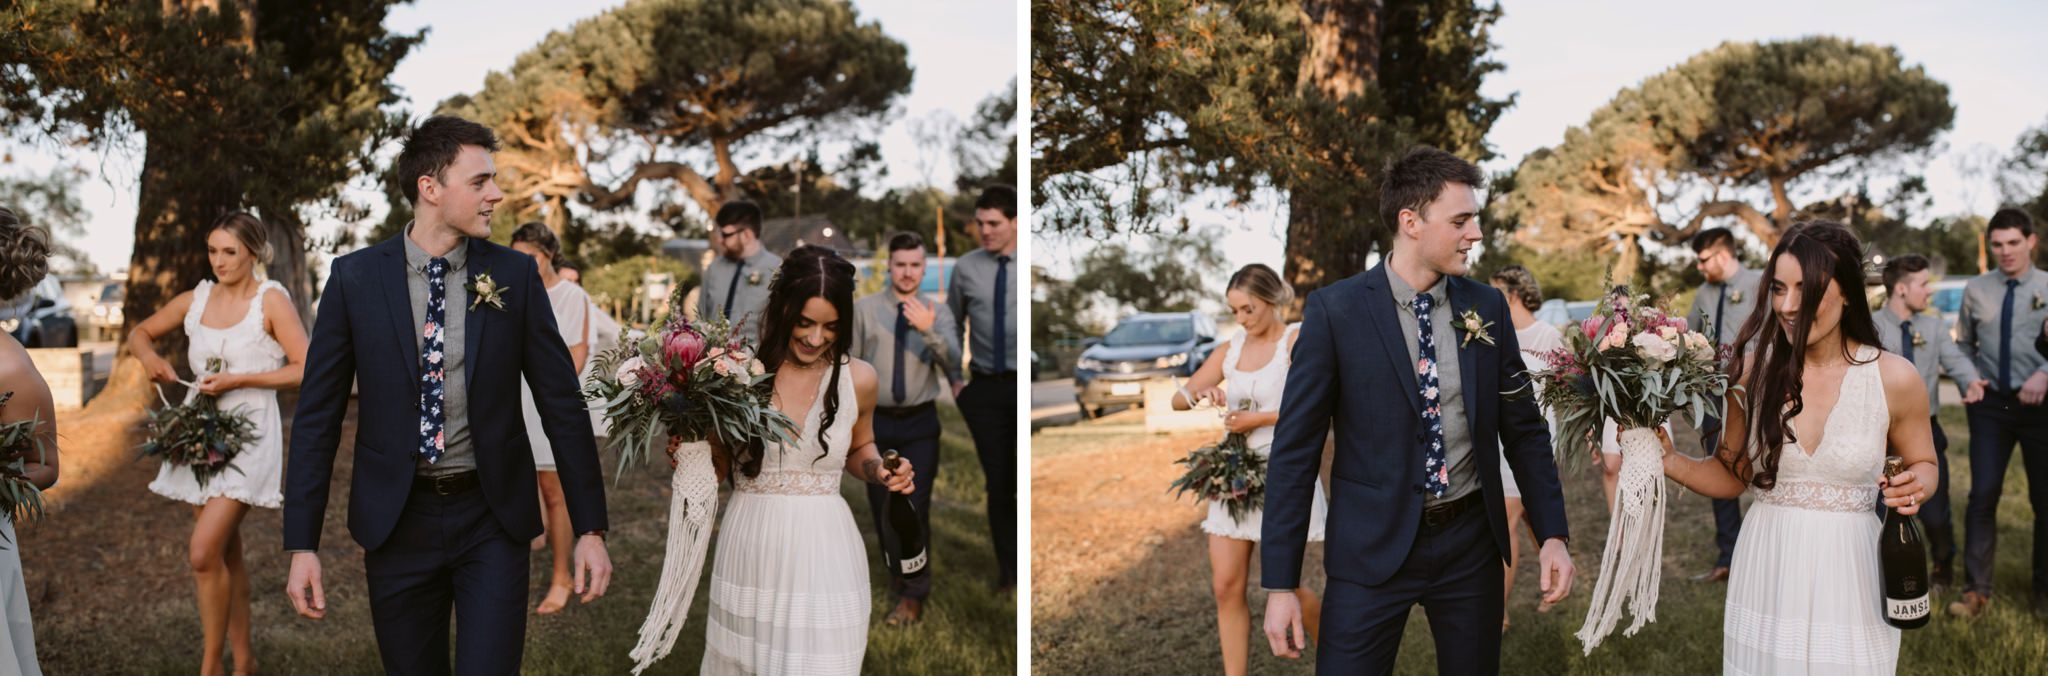 Baxter Barn Wedding Photography Mornington Peninsula99.jpg